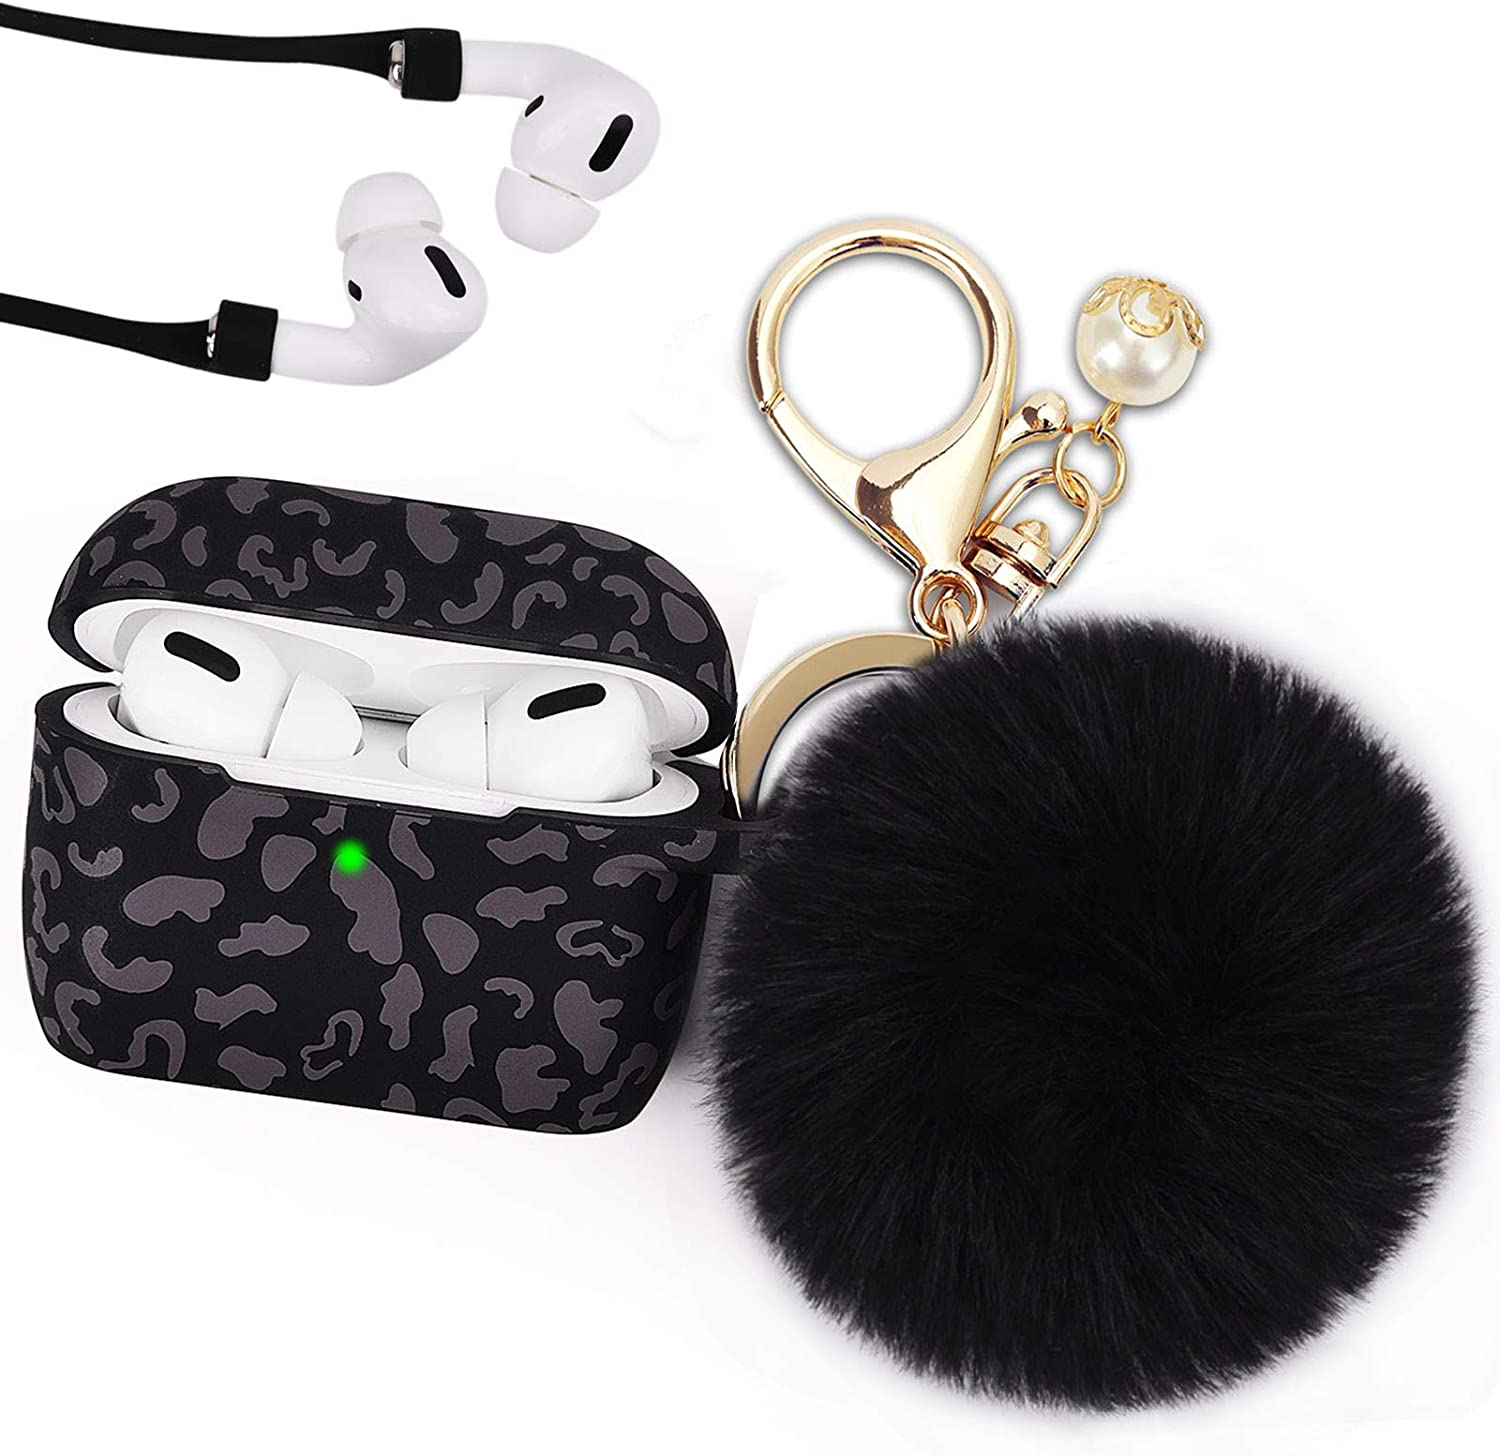 Leopard Case for Airpods Pro, Filoto Airpod Pro Case Cover for Apple AirPods Pro, Cute Cheetah Print Air Pods 3 Silicone Protective Cases Accessories Keychain/Pompom/Strap (Dark Leopard)